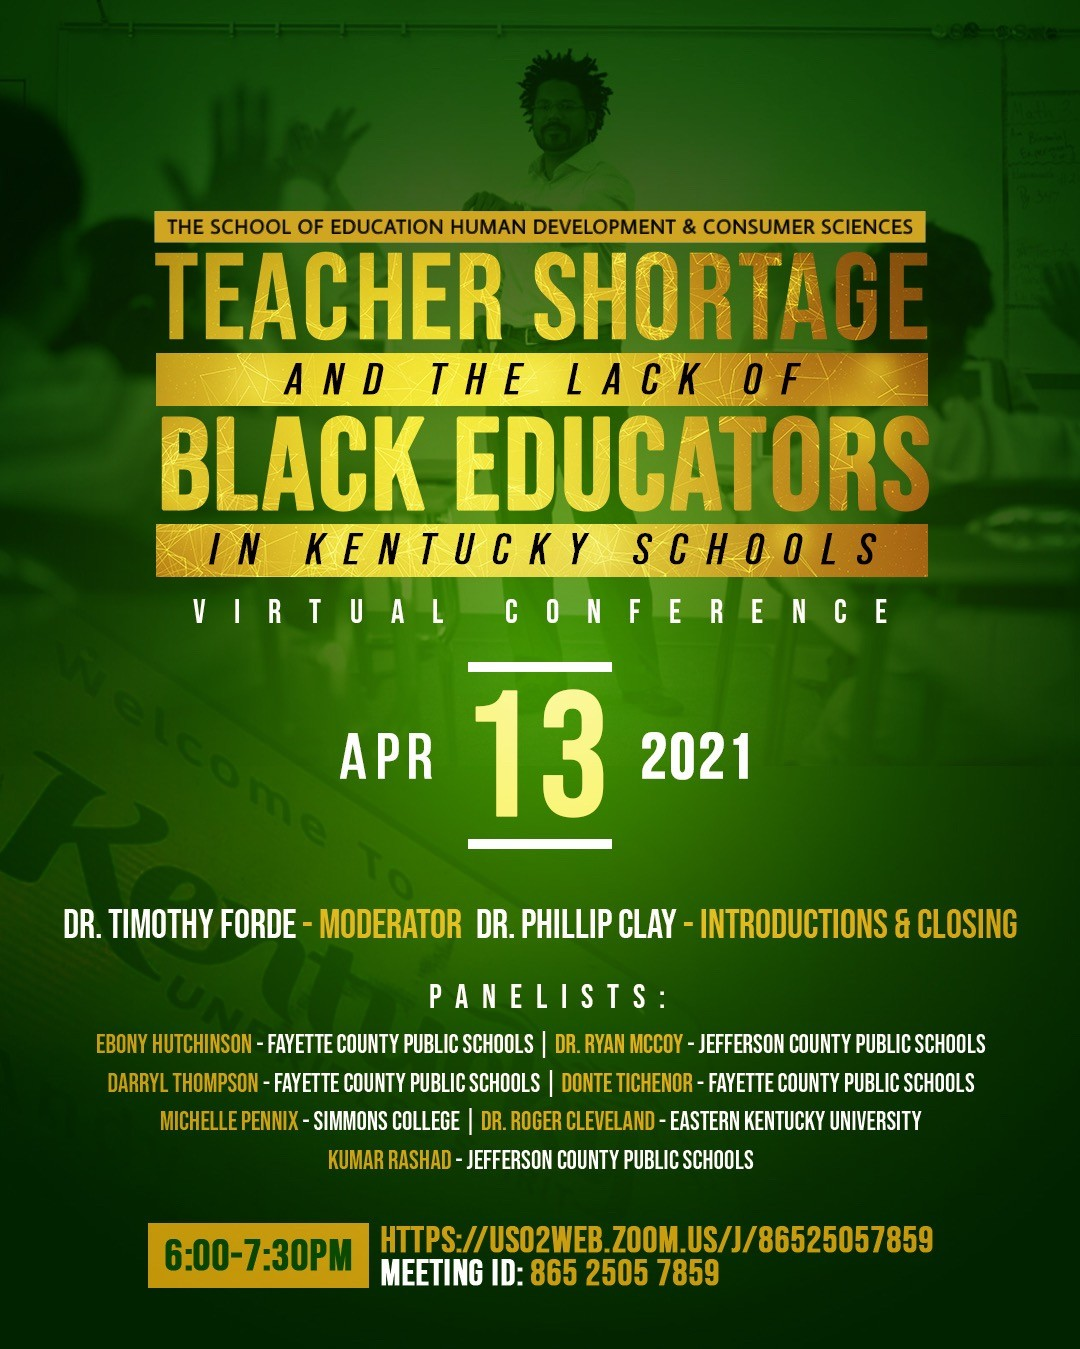 Teacher Shortage and the Lack of Black Educators in Kentucky Schools virtual conference